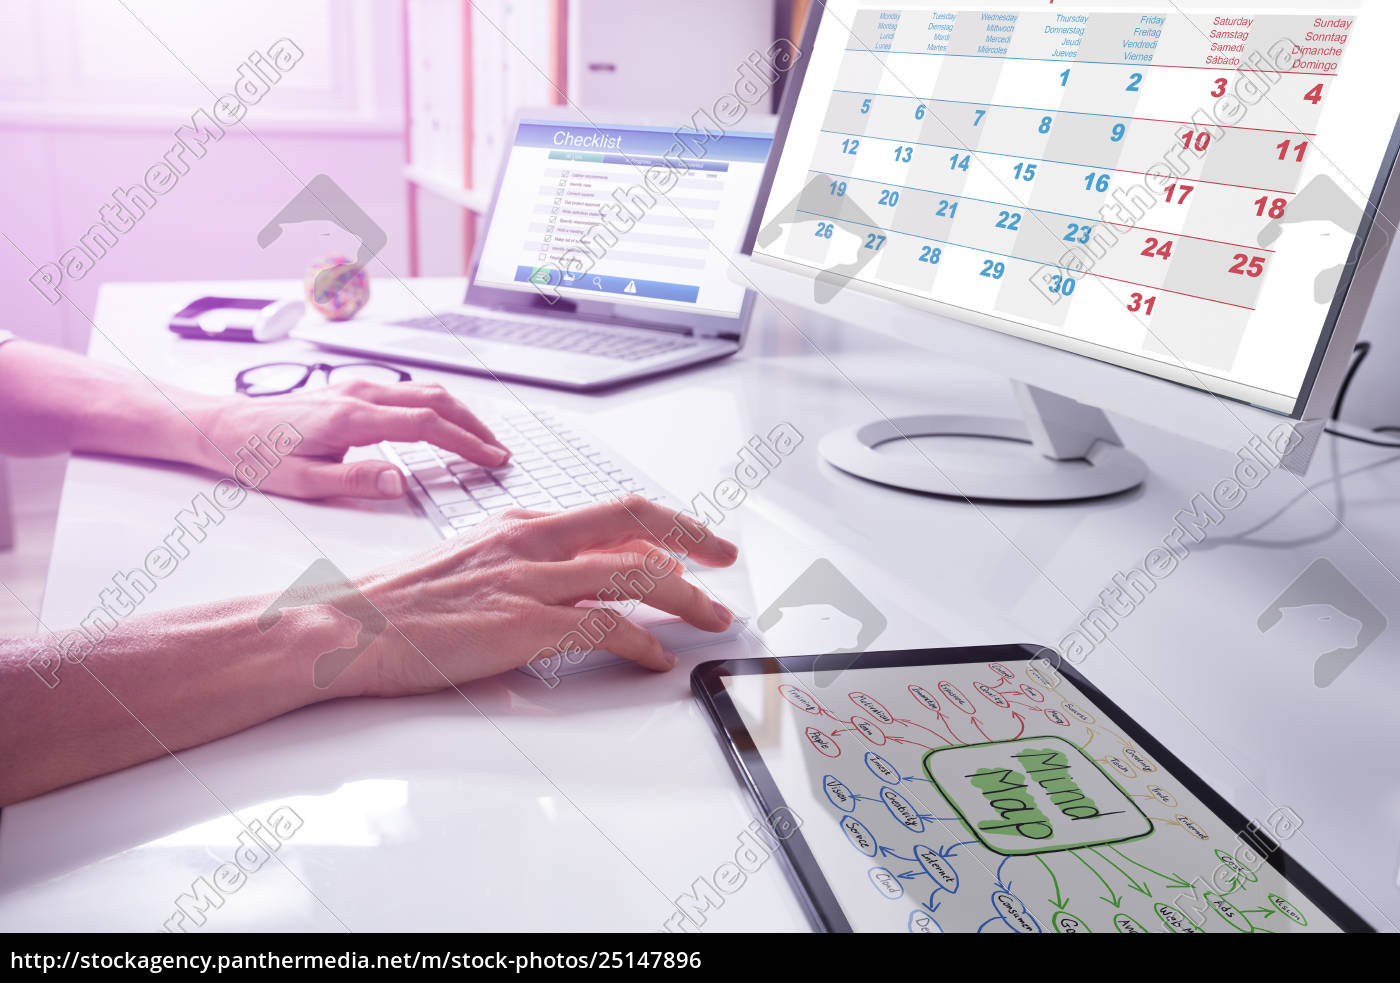 businessperson's, hand, using, computer - 25147896